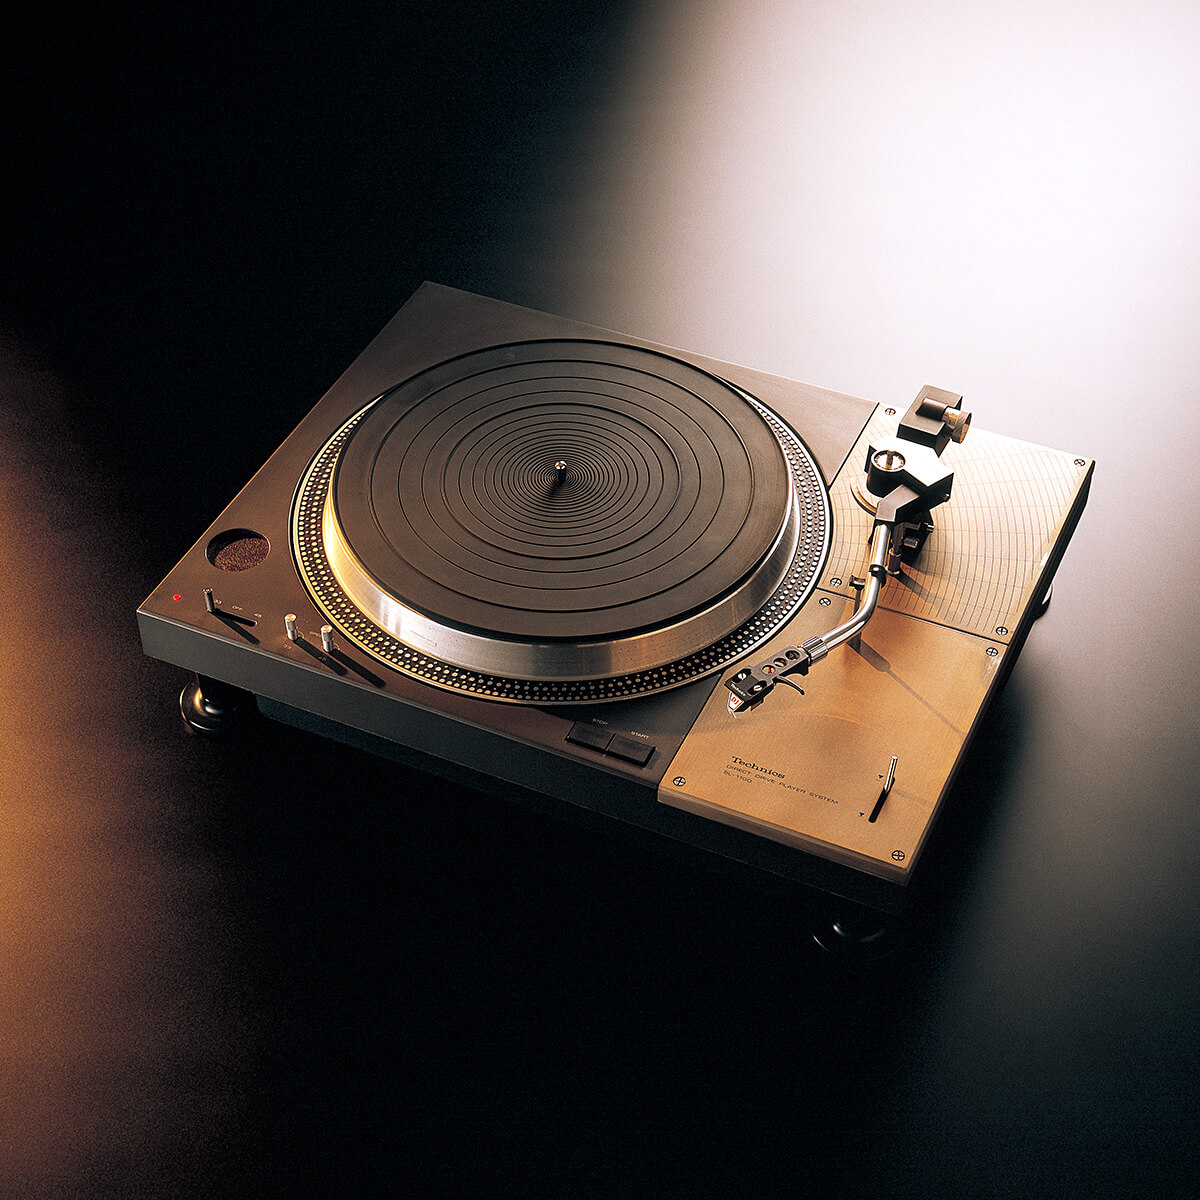 The Technics SL-1200 is back, and this time for DJs again